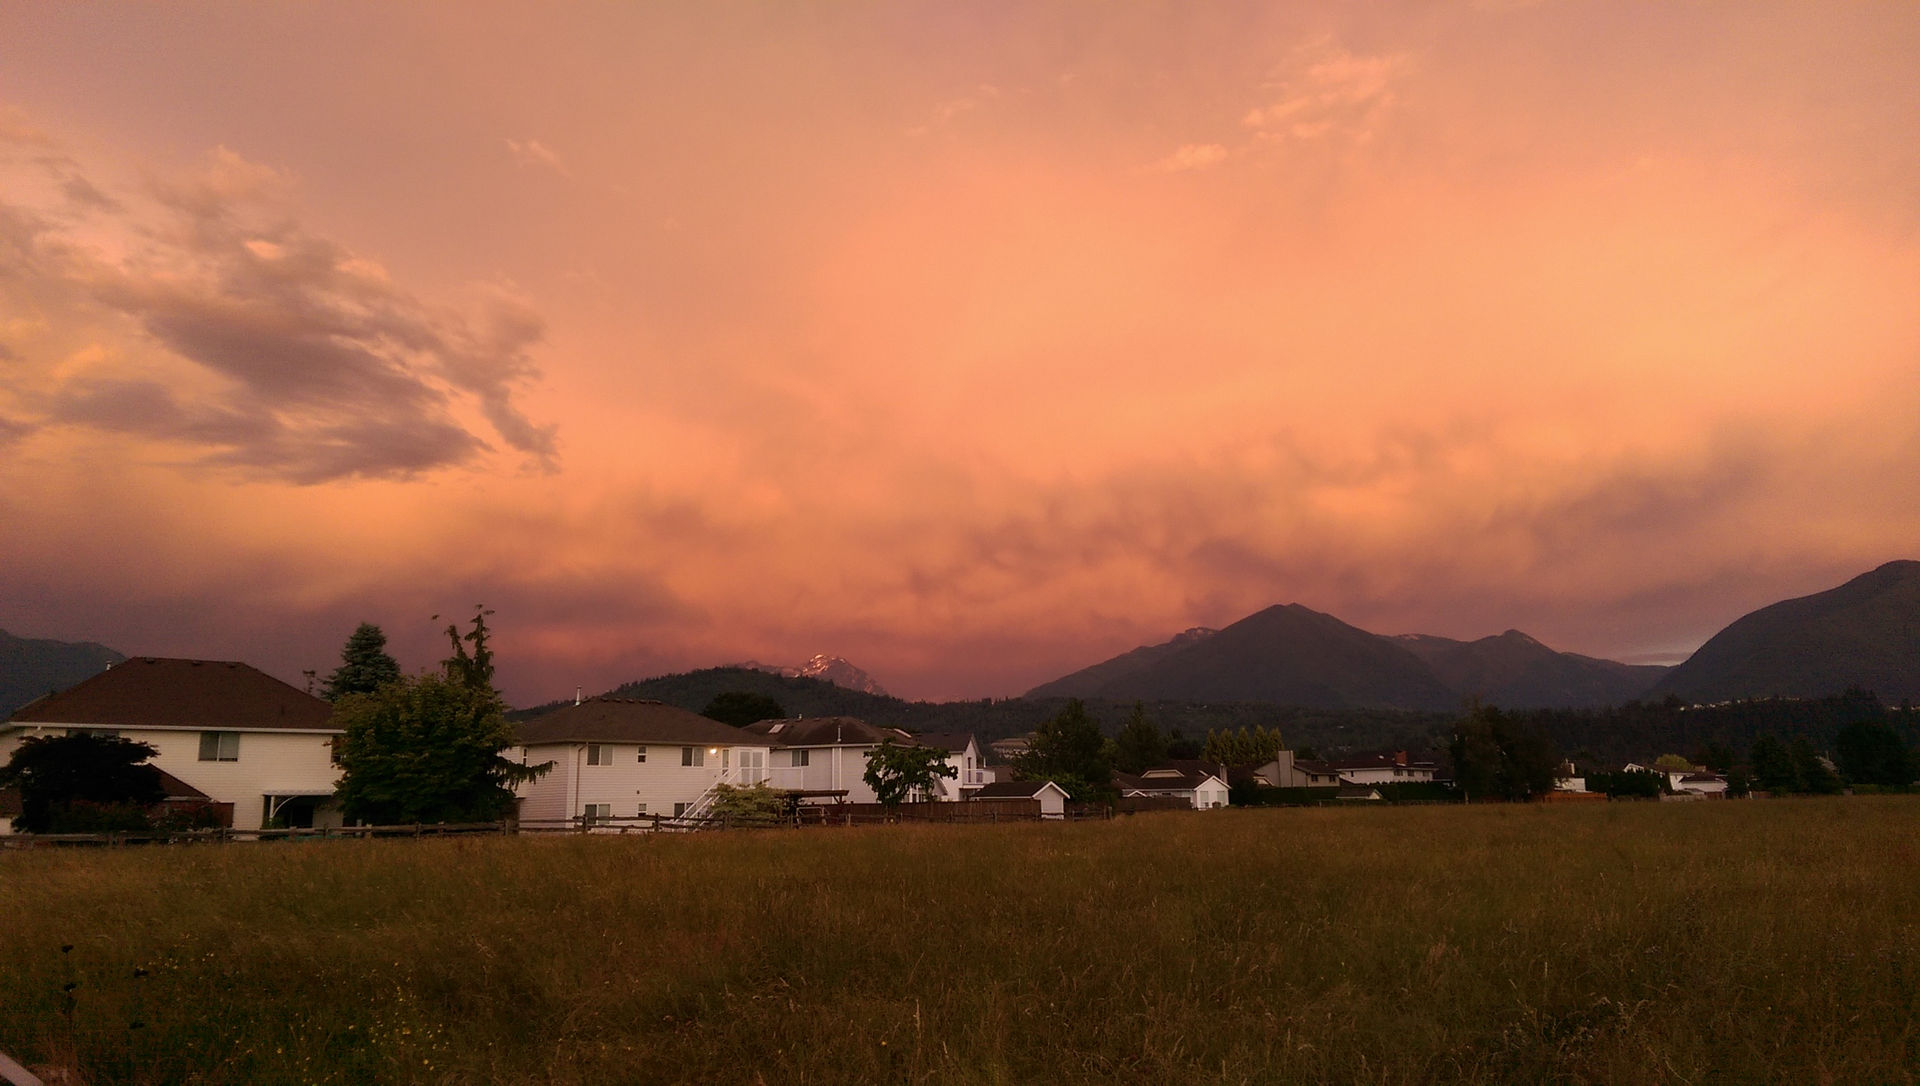 Orange clouds over the mountains